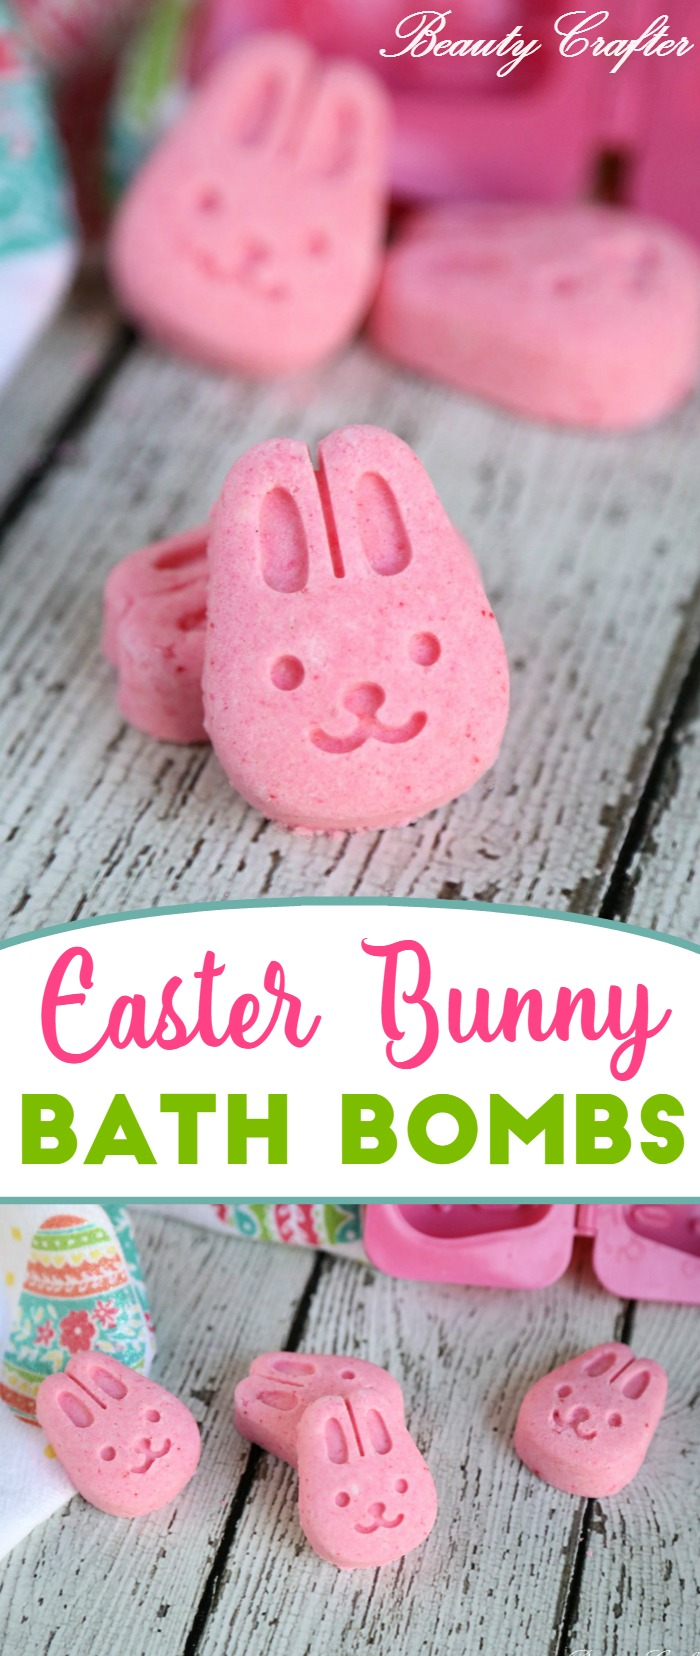 Easter Bath Bombs: Easter Bunny Craft - kids will love these